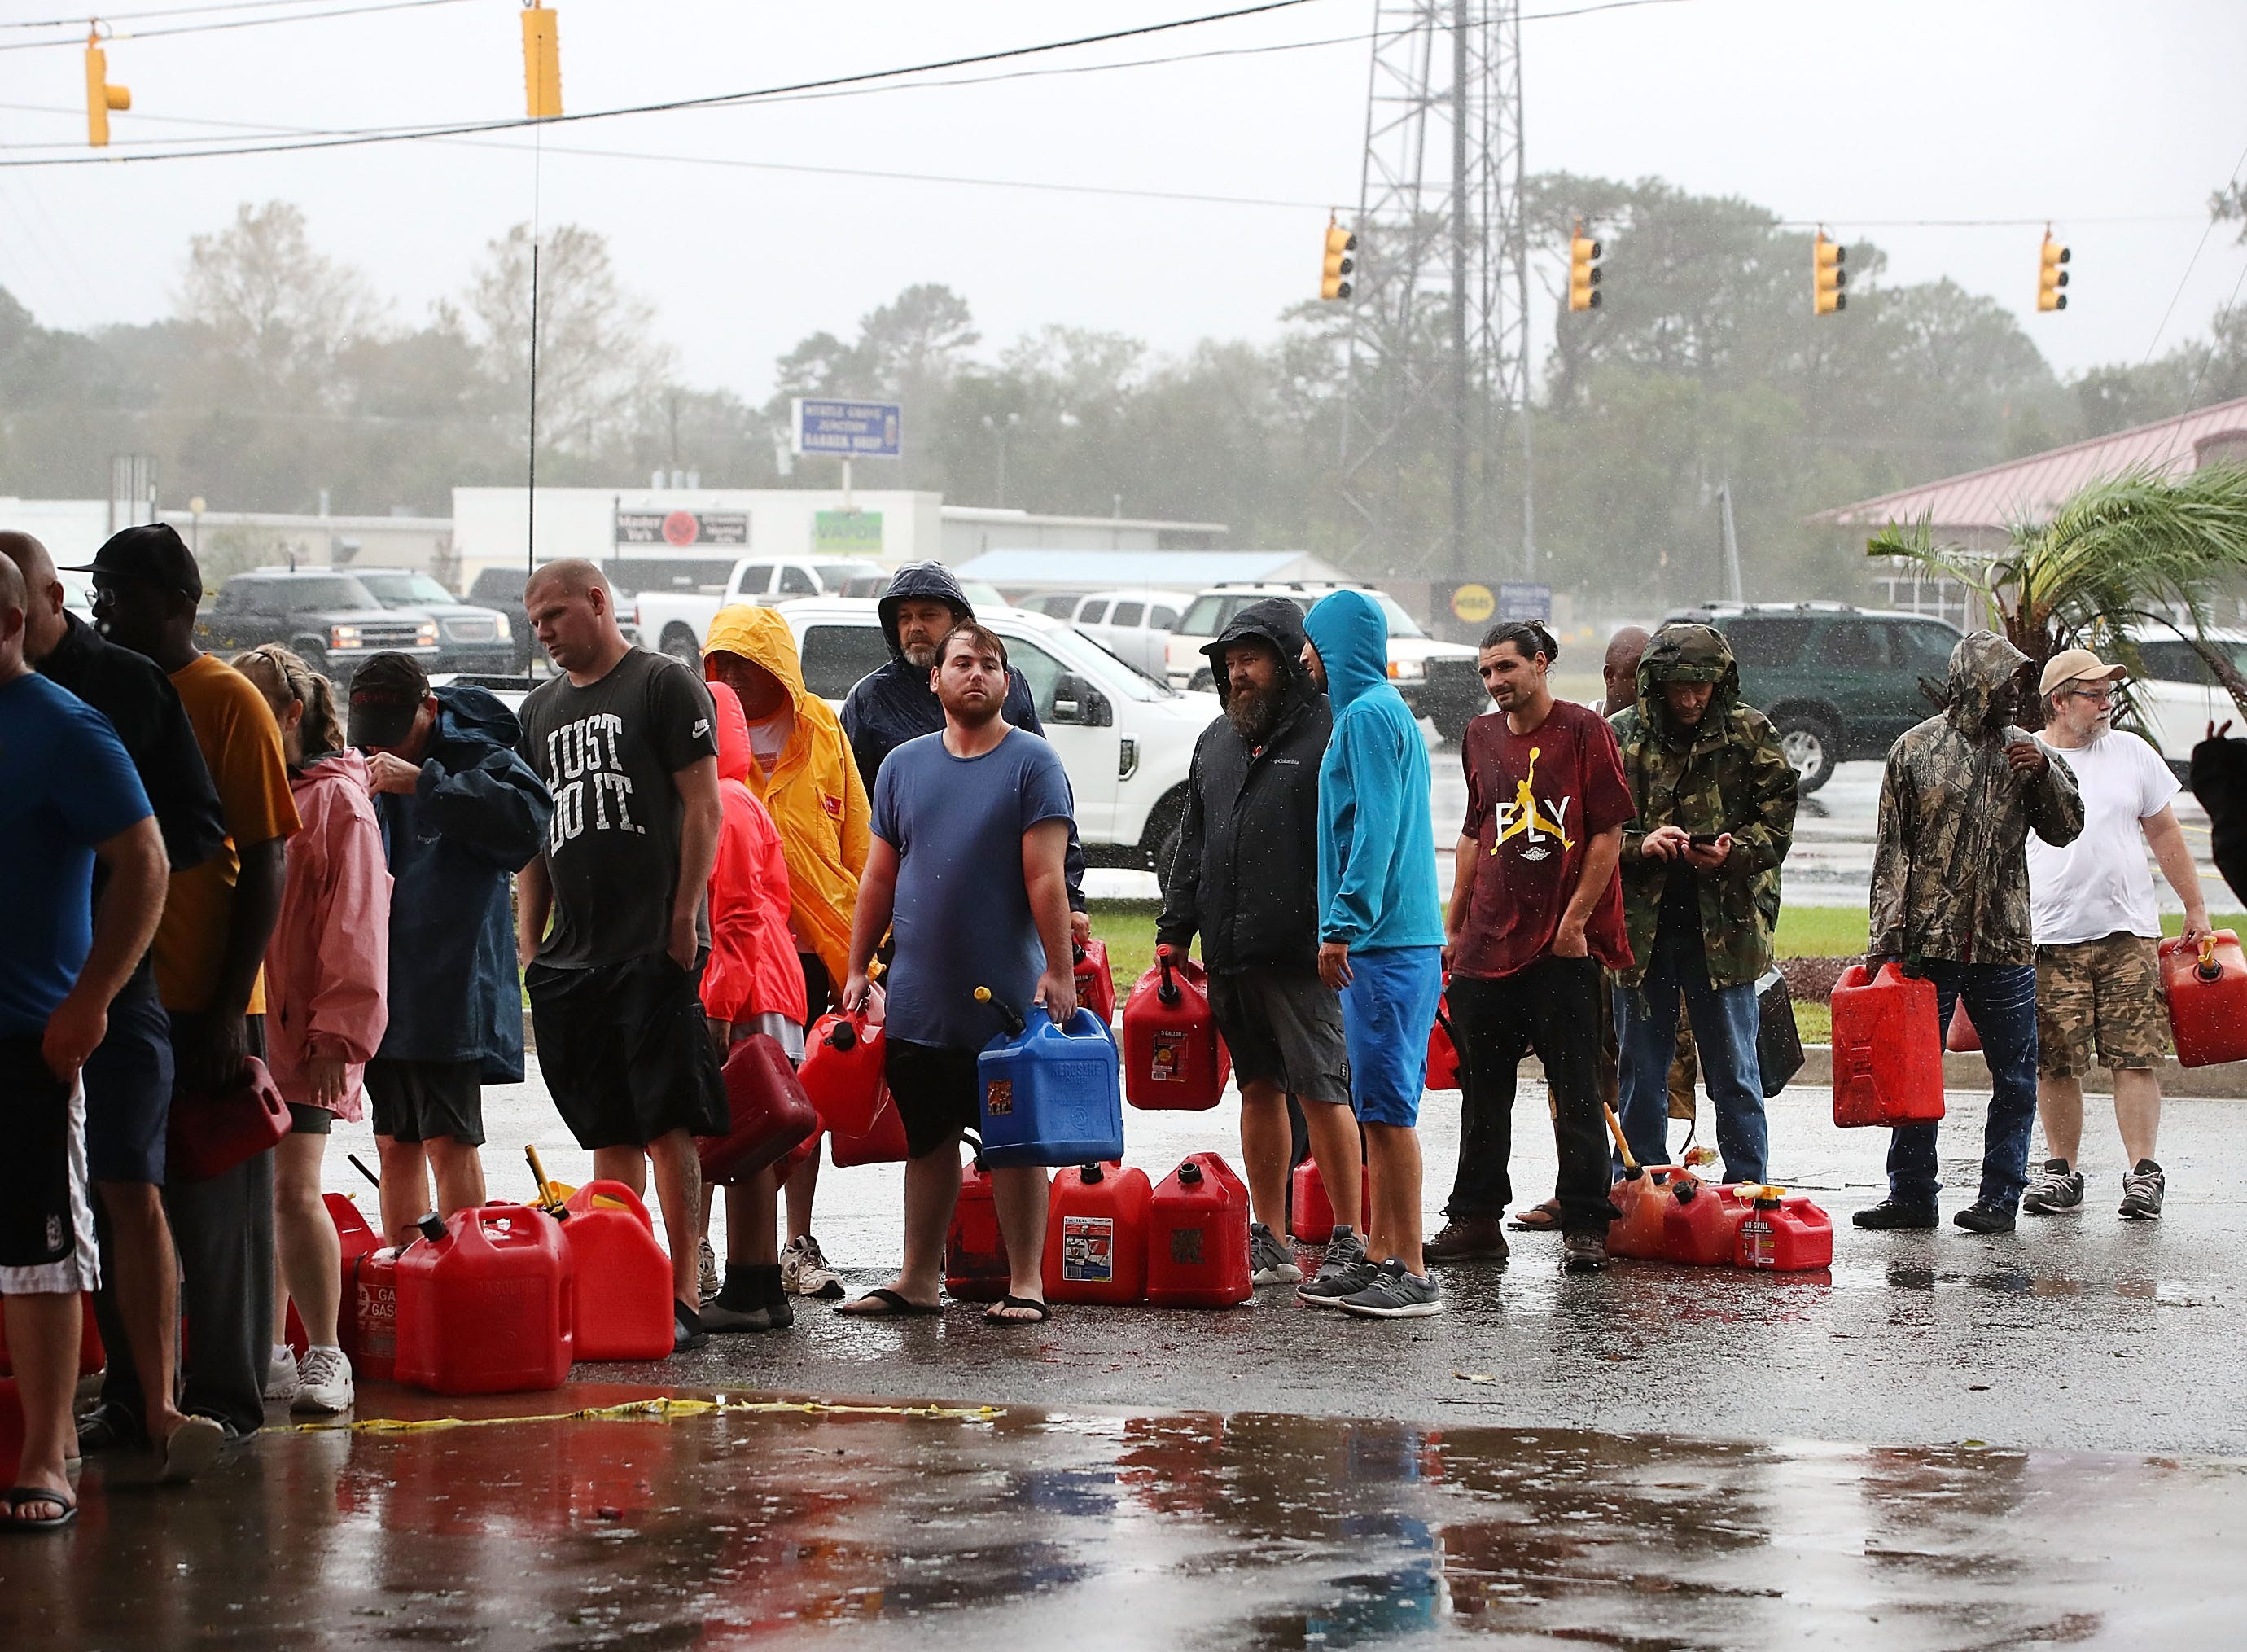 People wait in line to fill up their gas cans at a gas station that was damaged when Hurricane Florence hit the area, on Sept. 15, 2018 in Wilmington, N.C..